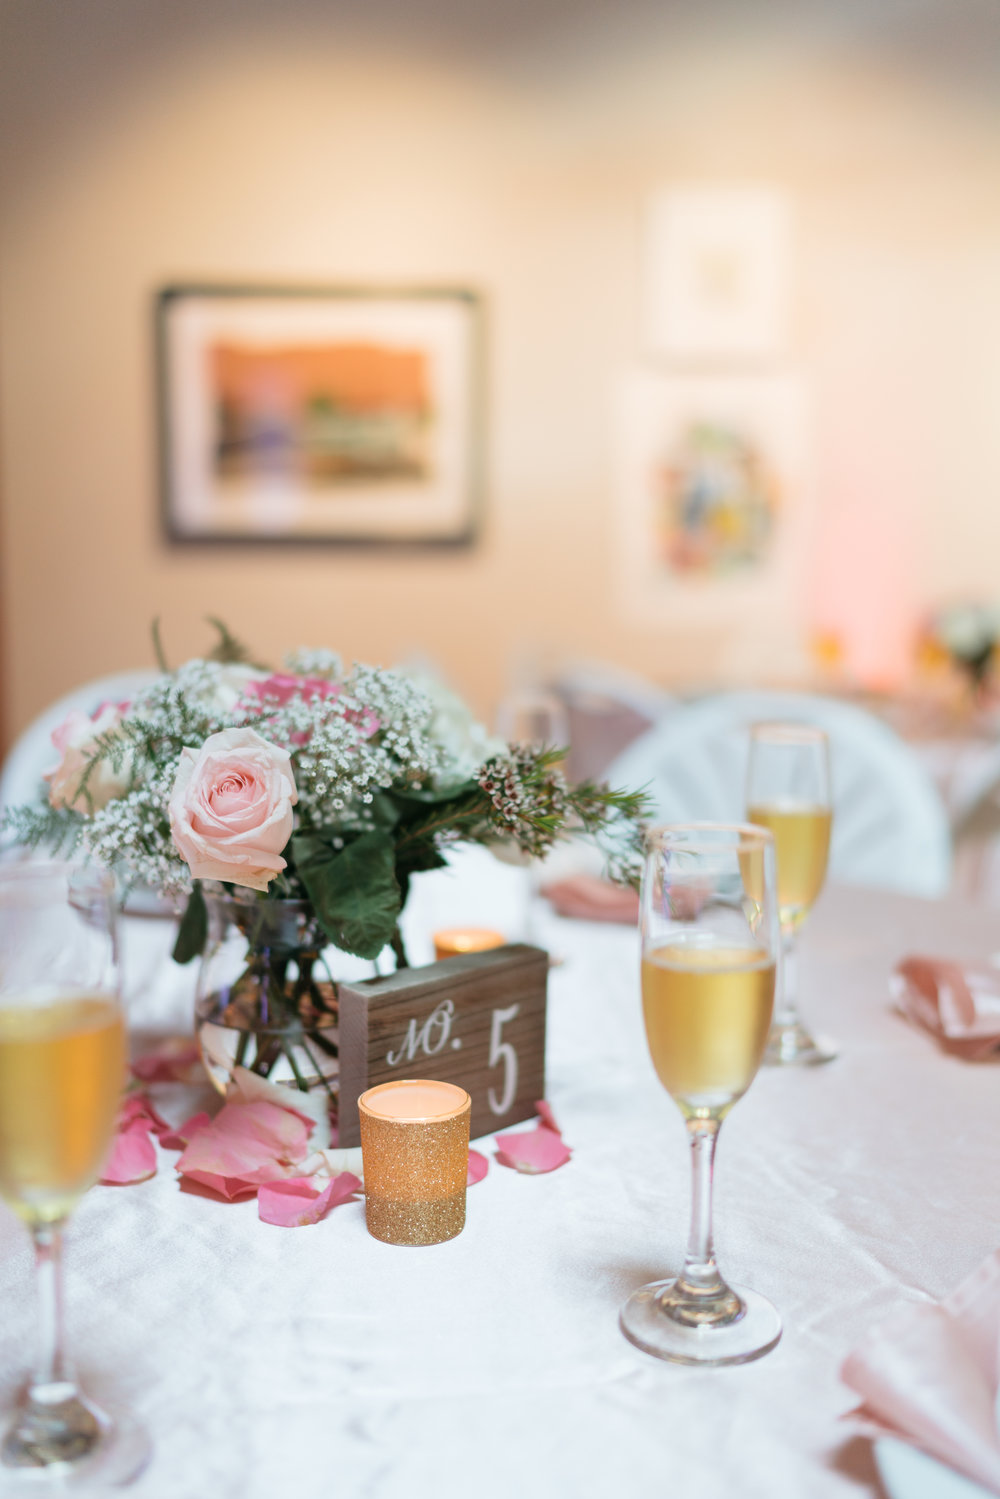 The champagne glasses provided by our caterer, gold votives (Michaels craft store), candles (Michael's craft store), table number blocks (T.J. Maxx), arrangements by mom and her best friend, along with scattered rose petals. I loved how they turned out!